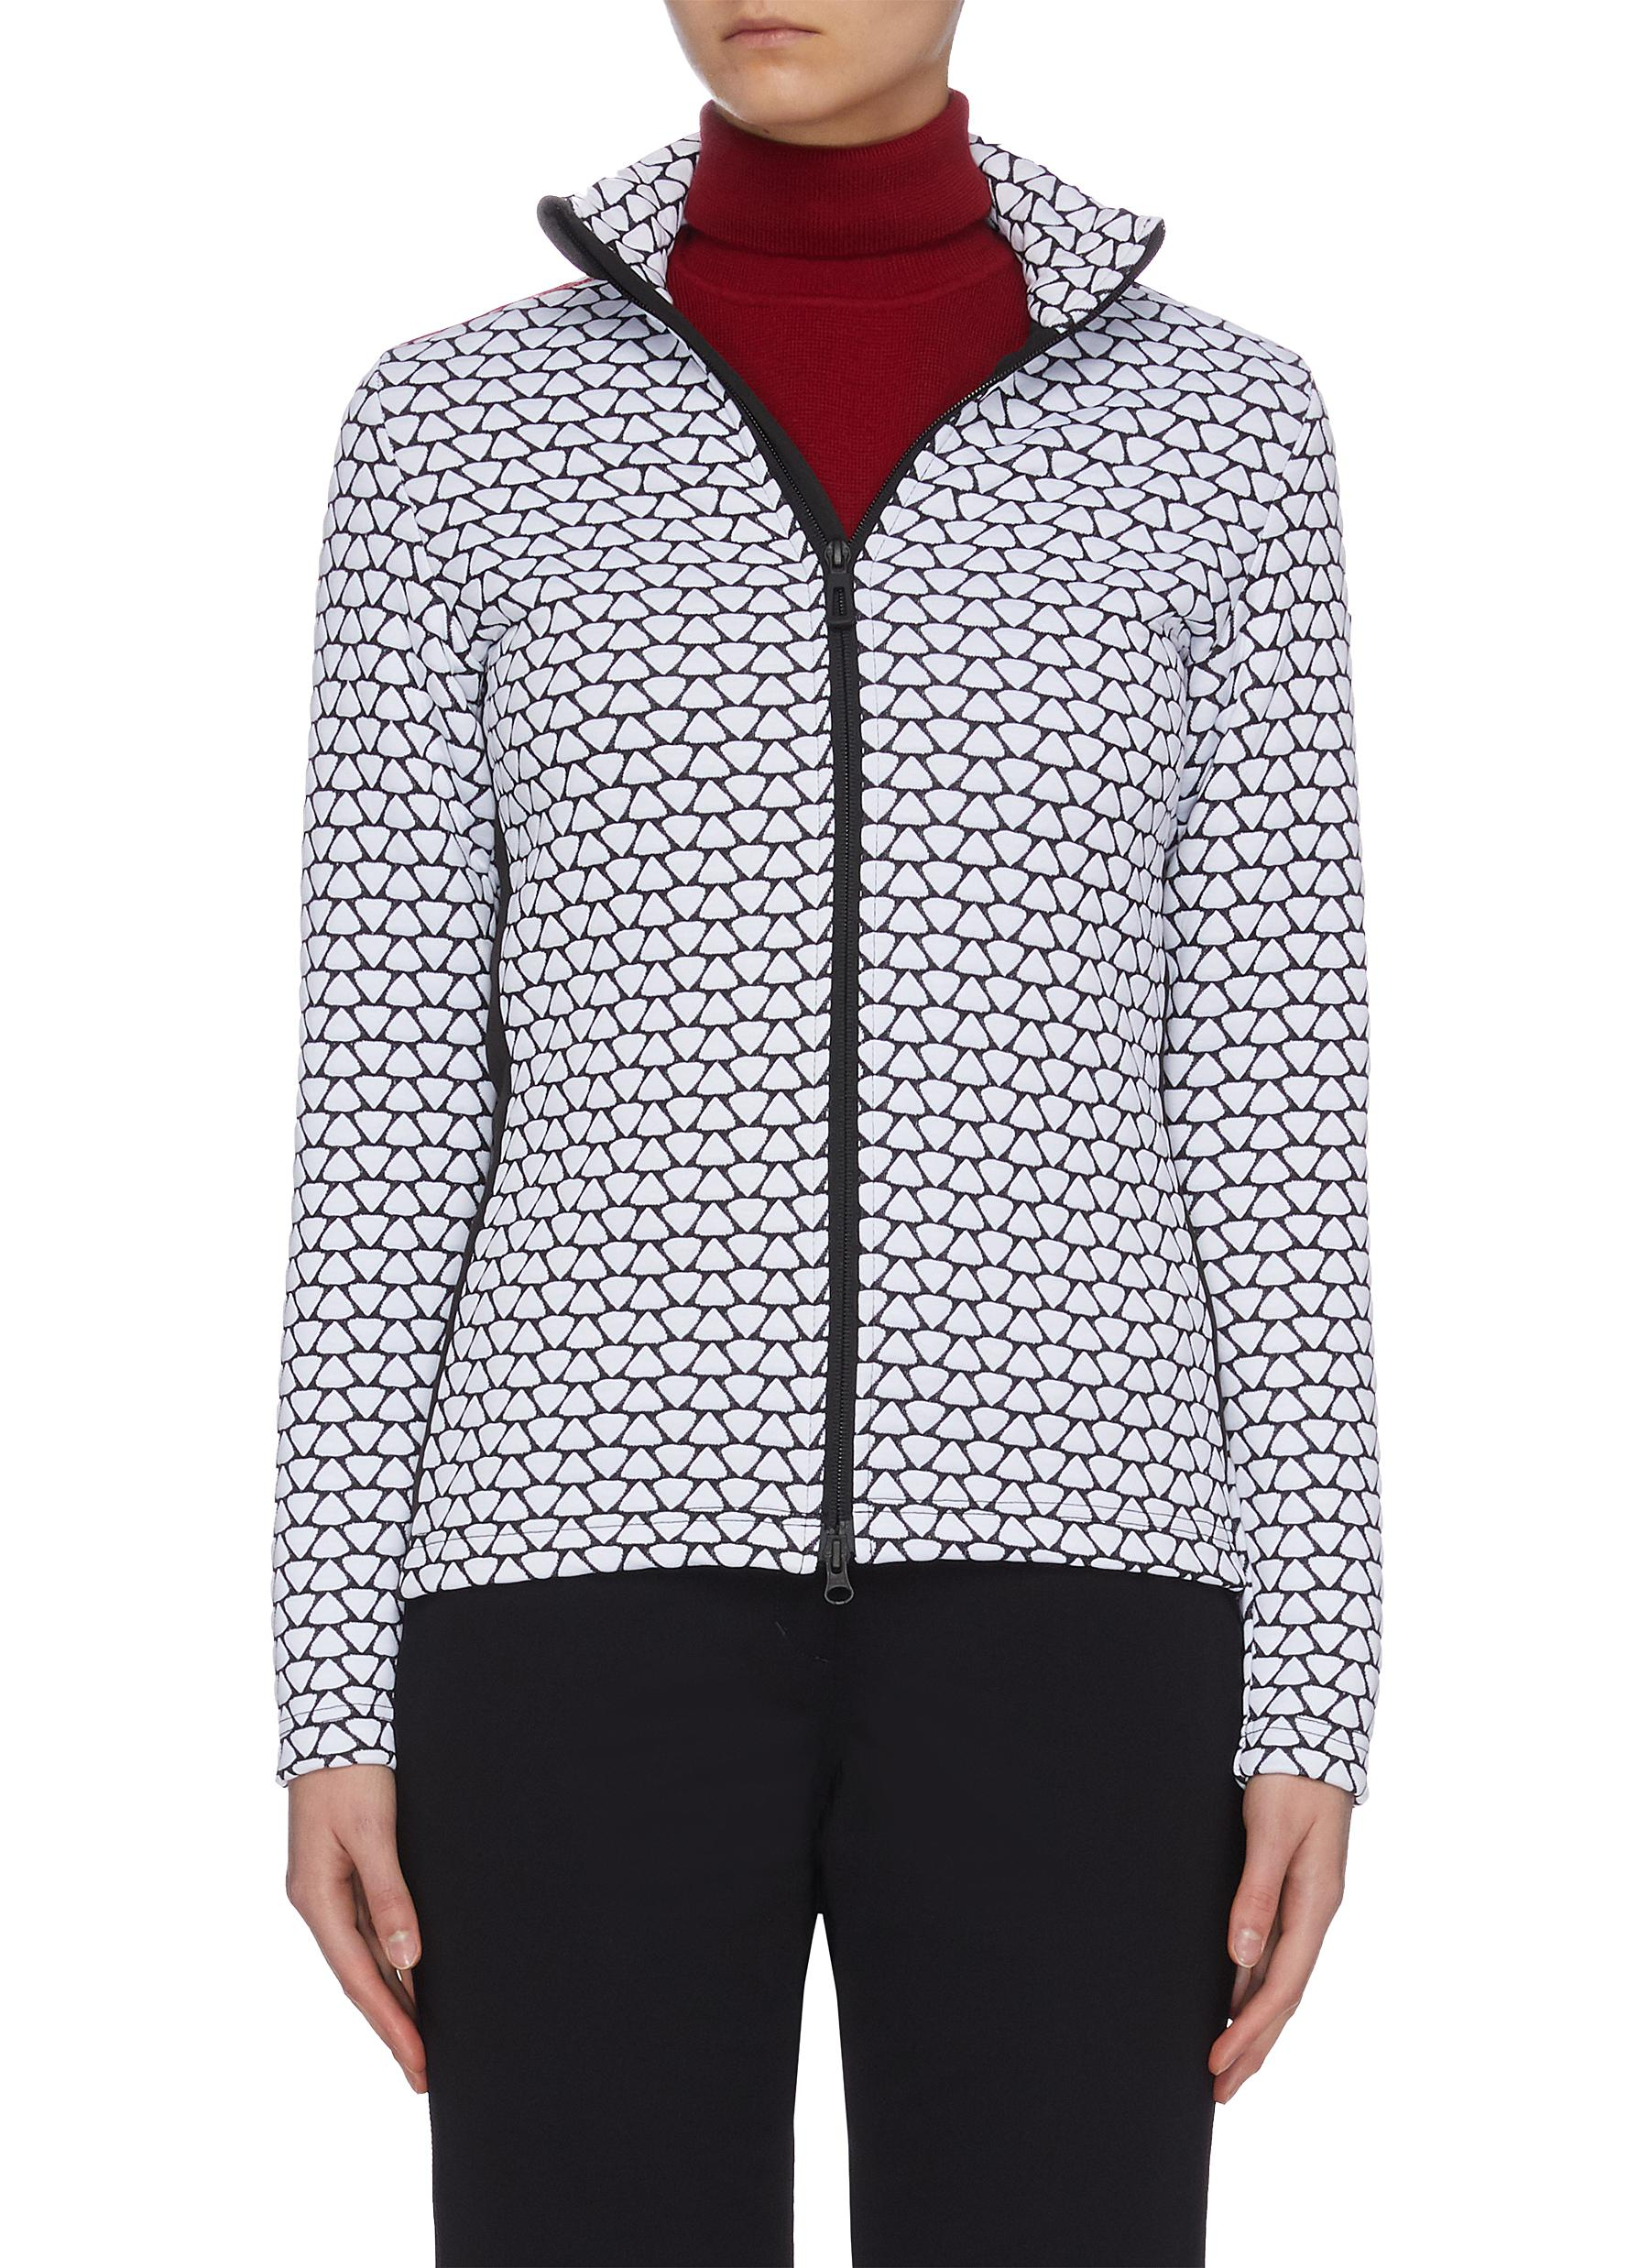 Buy Rossignol Jackets 'Hiver' allover print stand collar full zip layer